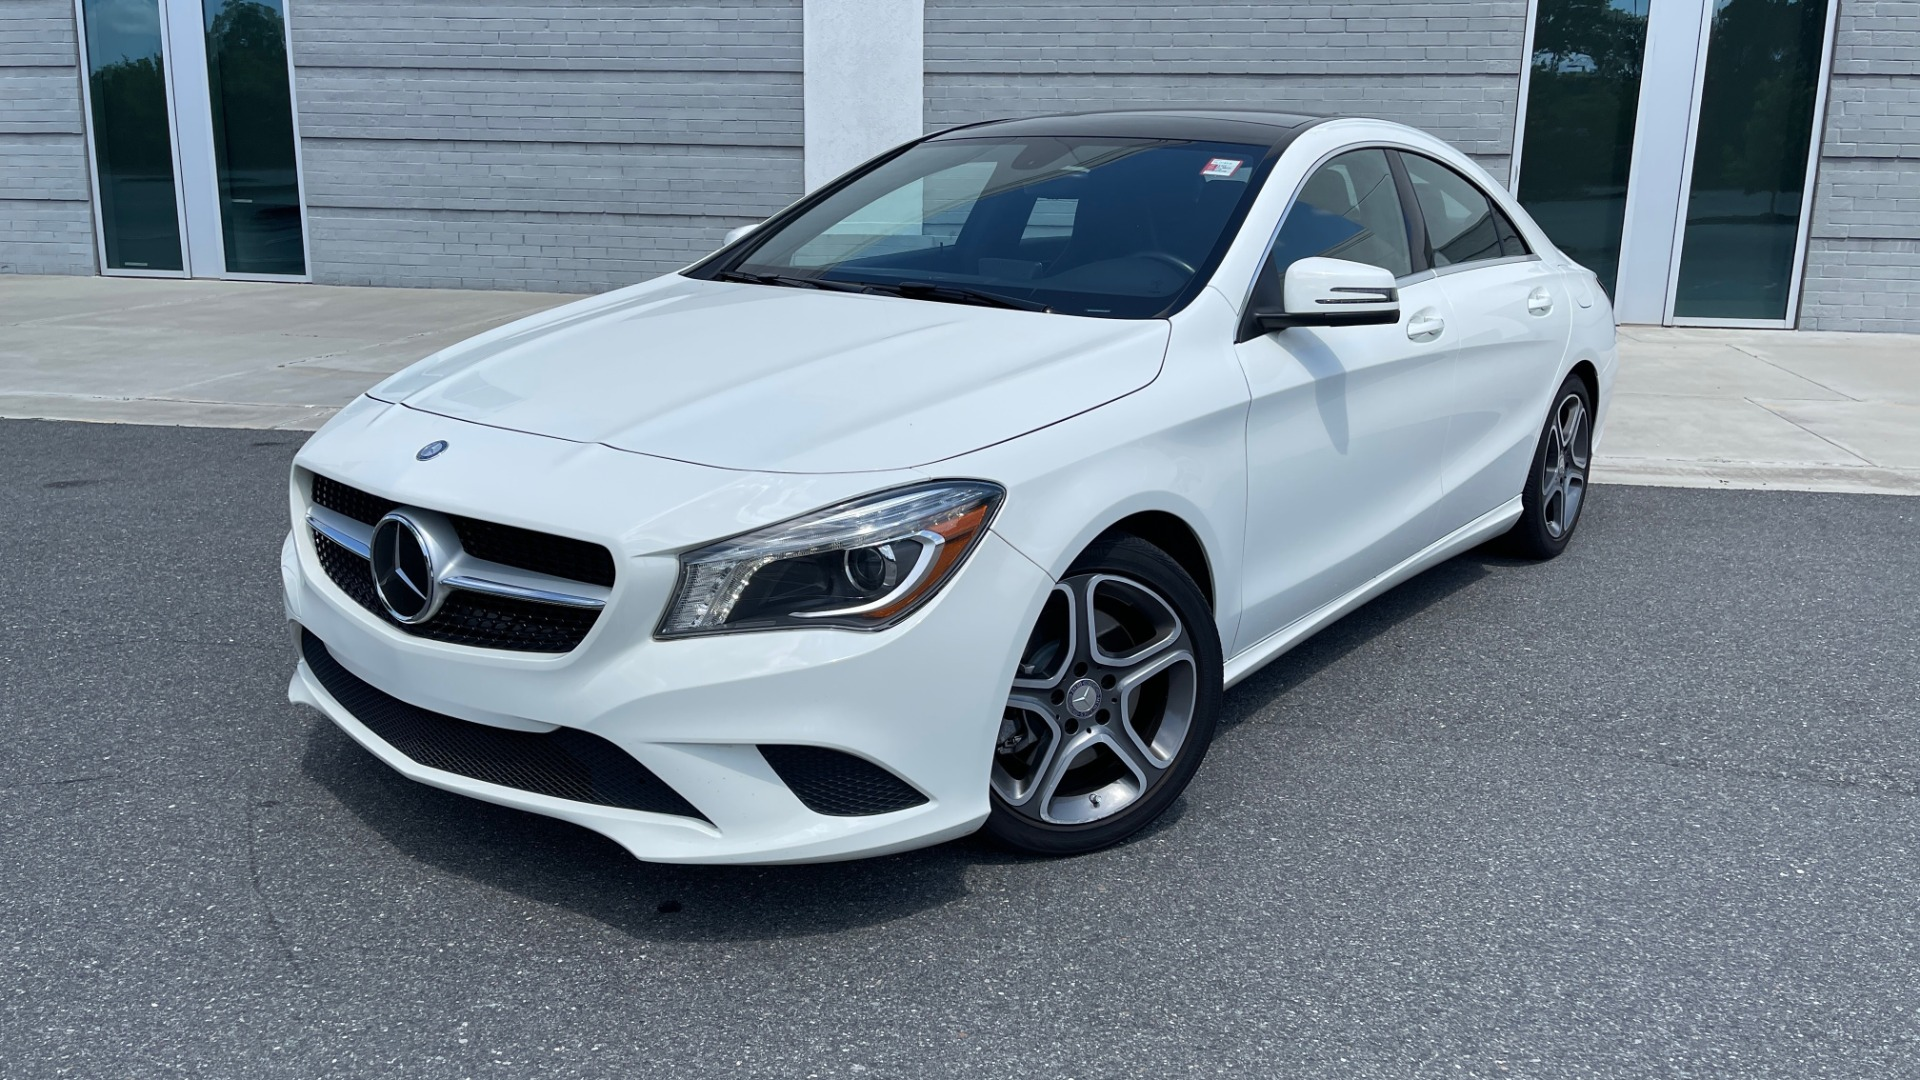 Used 2014 Mercedes-Benz CLA-Class 250 PREMIUM / NAV / MULTIMEDIA PKG / PANO-ROOF / REARVIEW for sale $19,495 at Formula Imports in Charlotte NC 28227 1